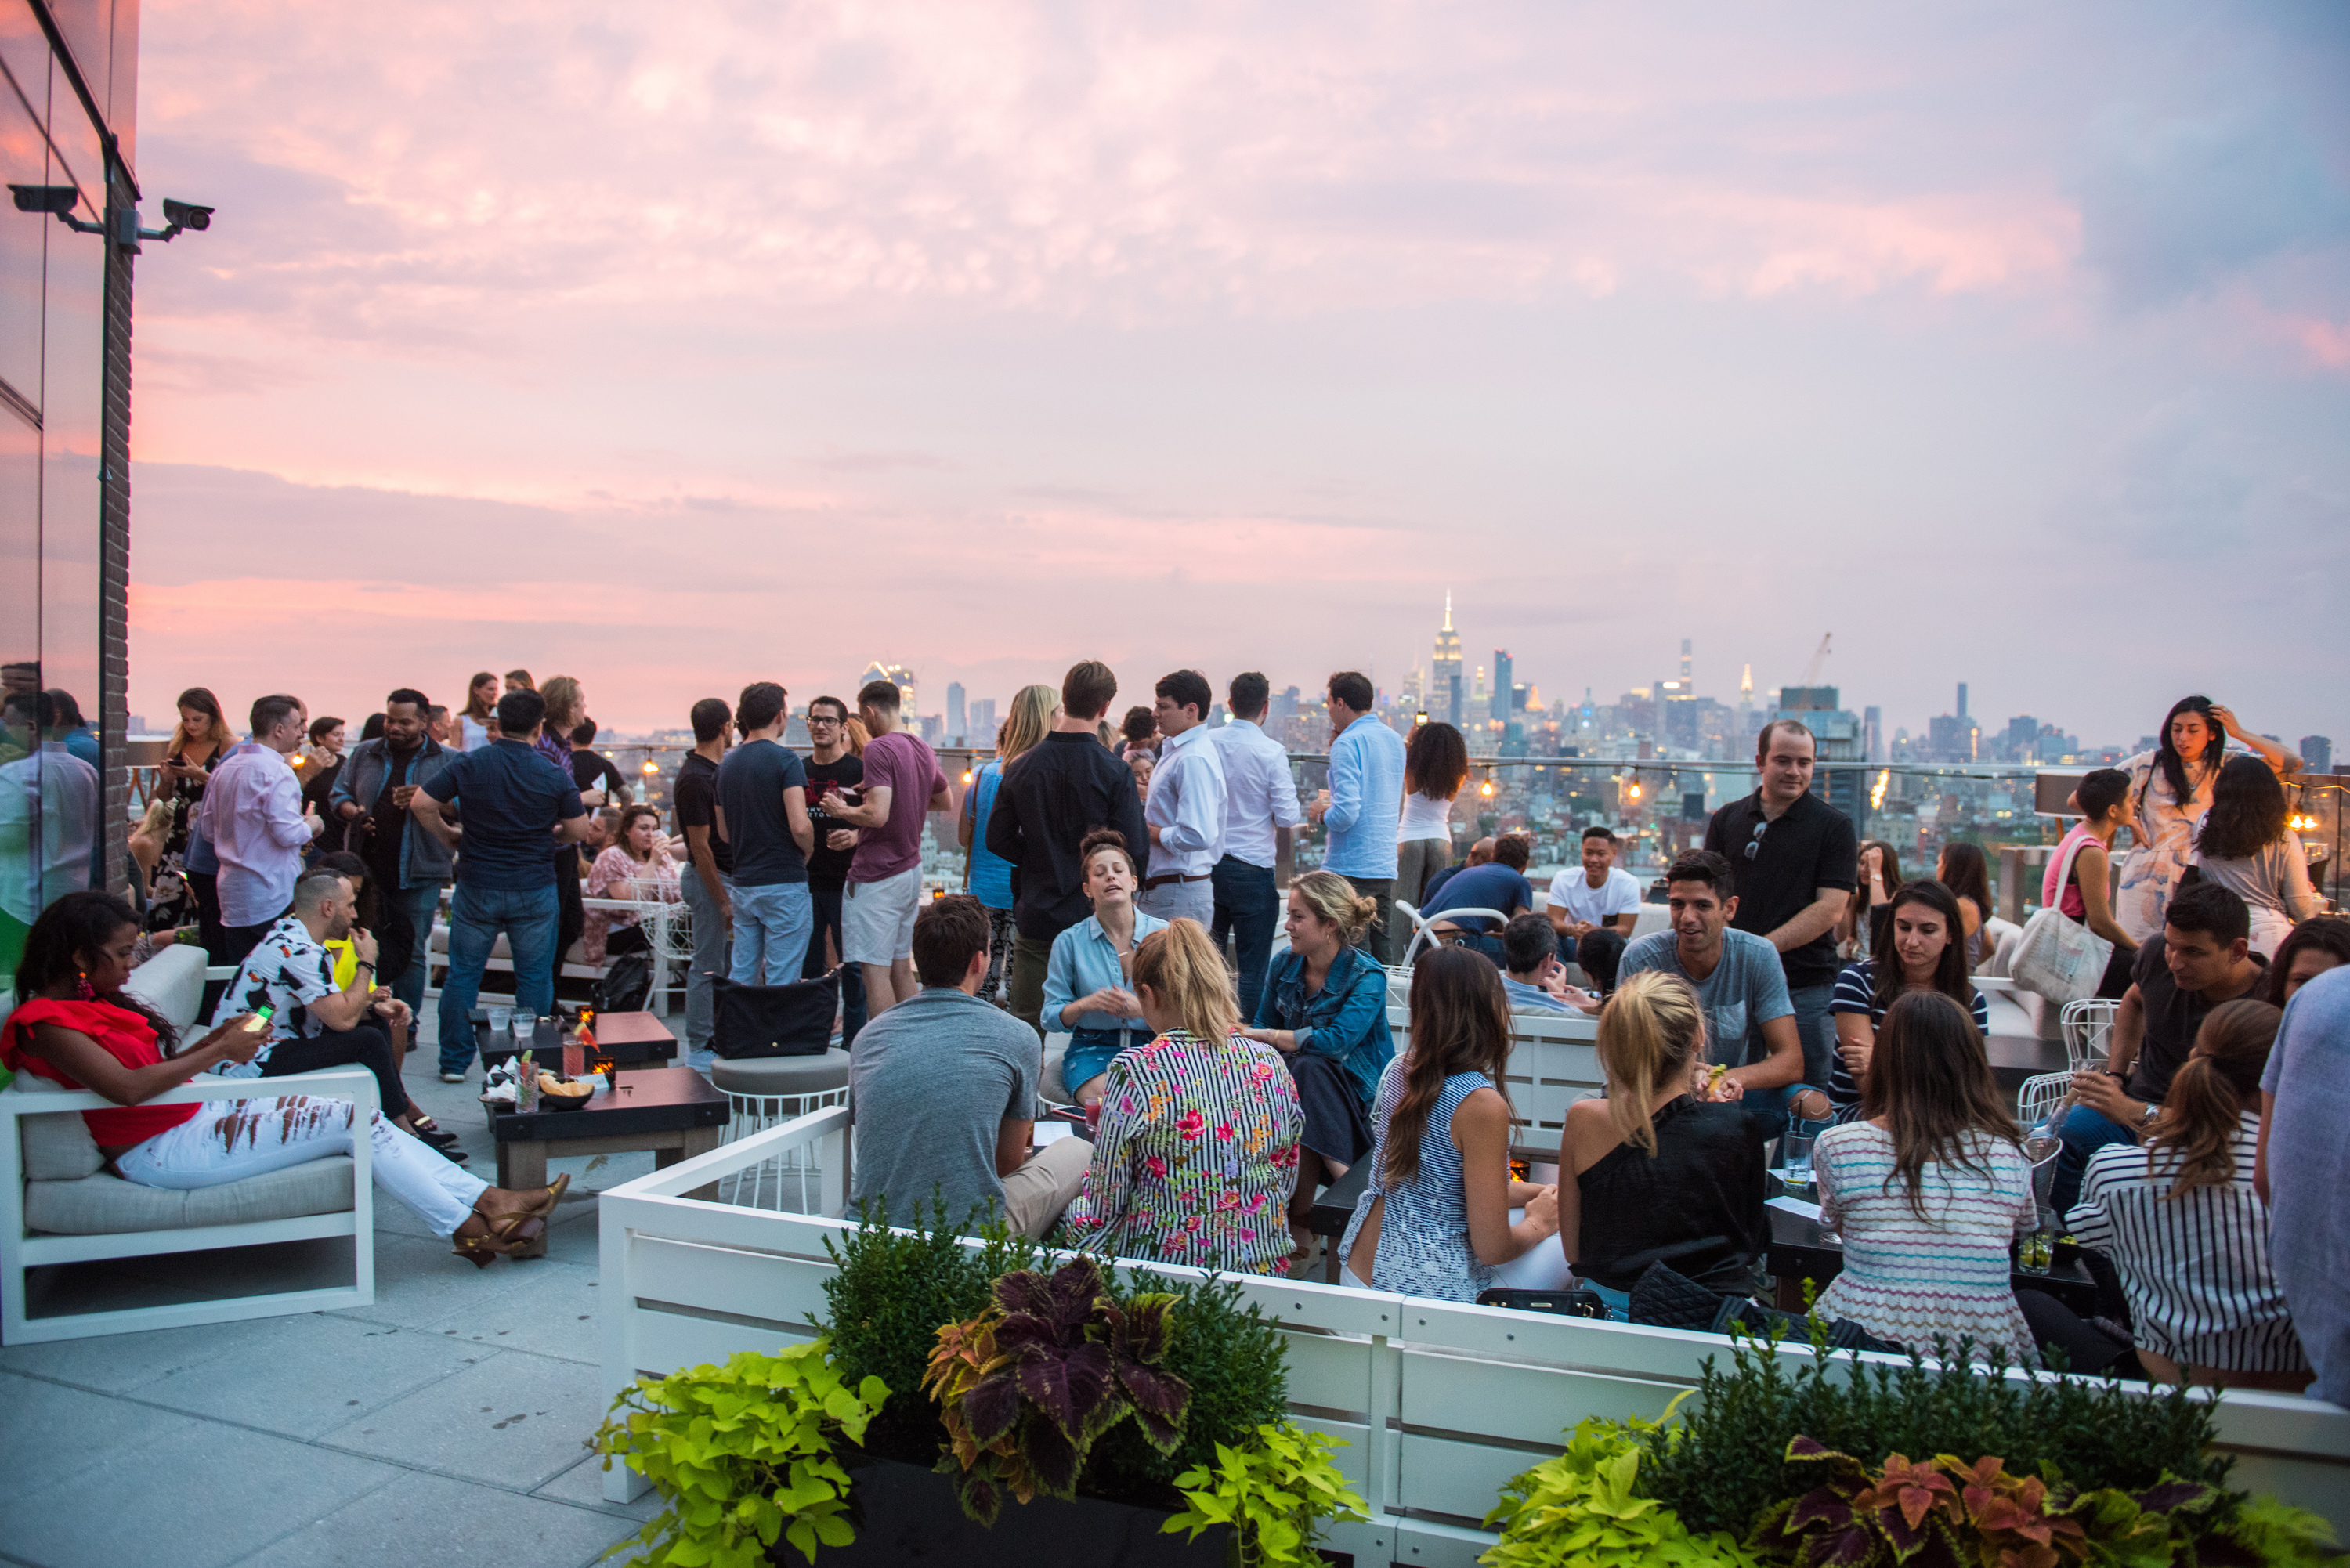 The 23 best rooftop bars in NYC